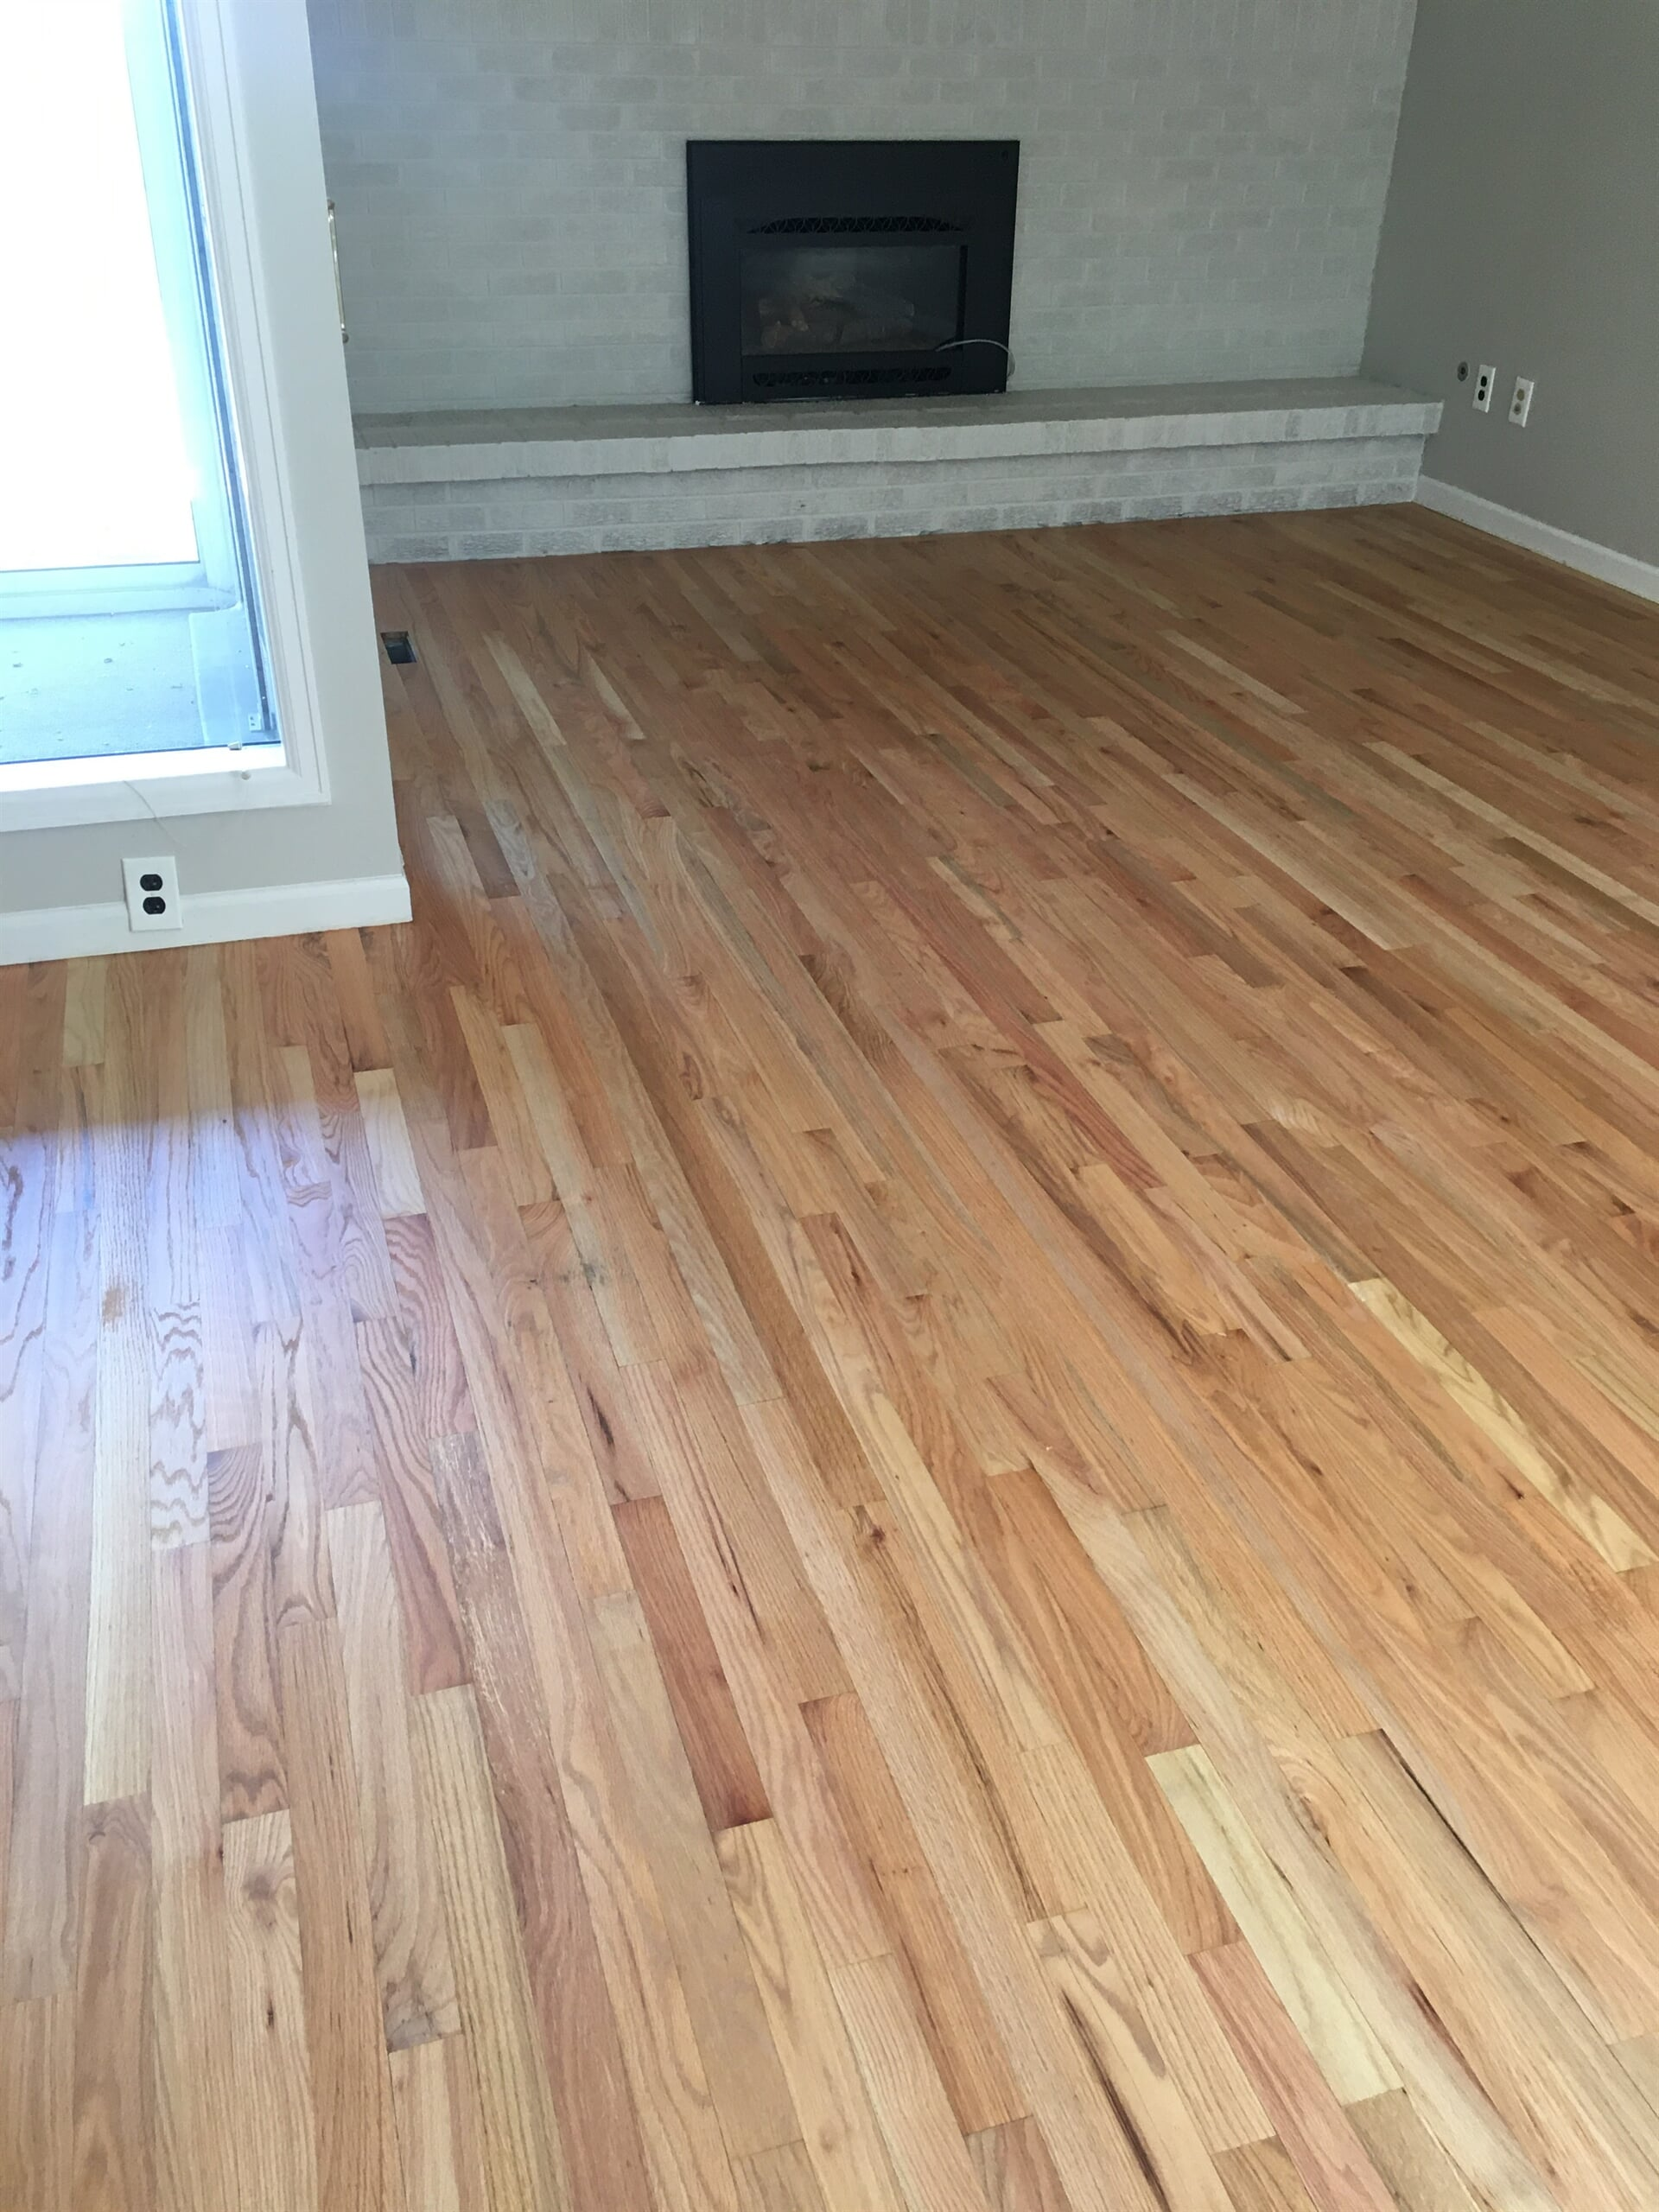 Wood floors in Broomfield, CO from FH Flooring